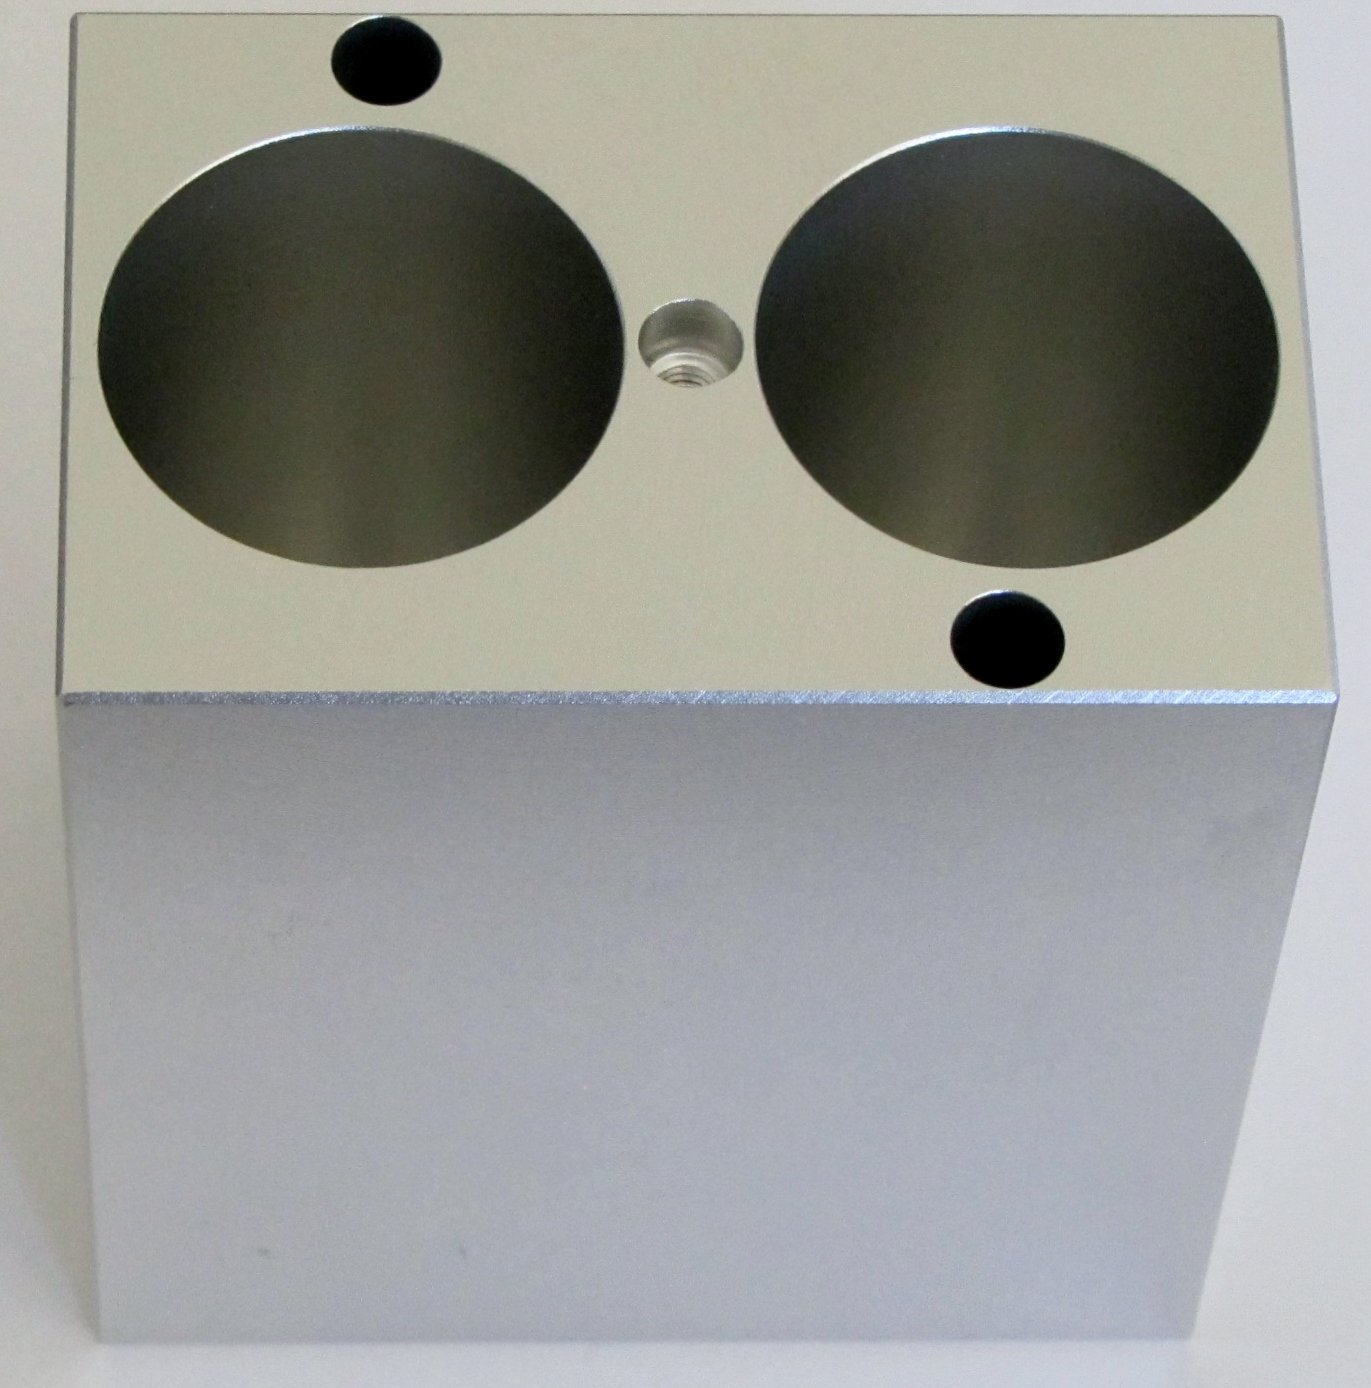 Heating Block for Minit-100 Dry Bath, Lab Heat Block for 50 Ml Tubes